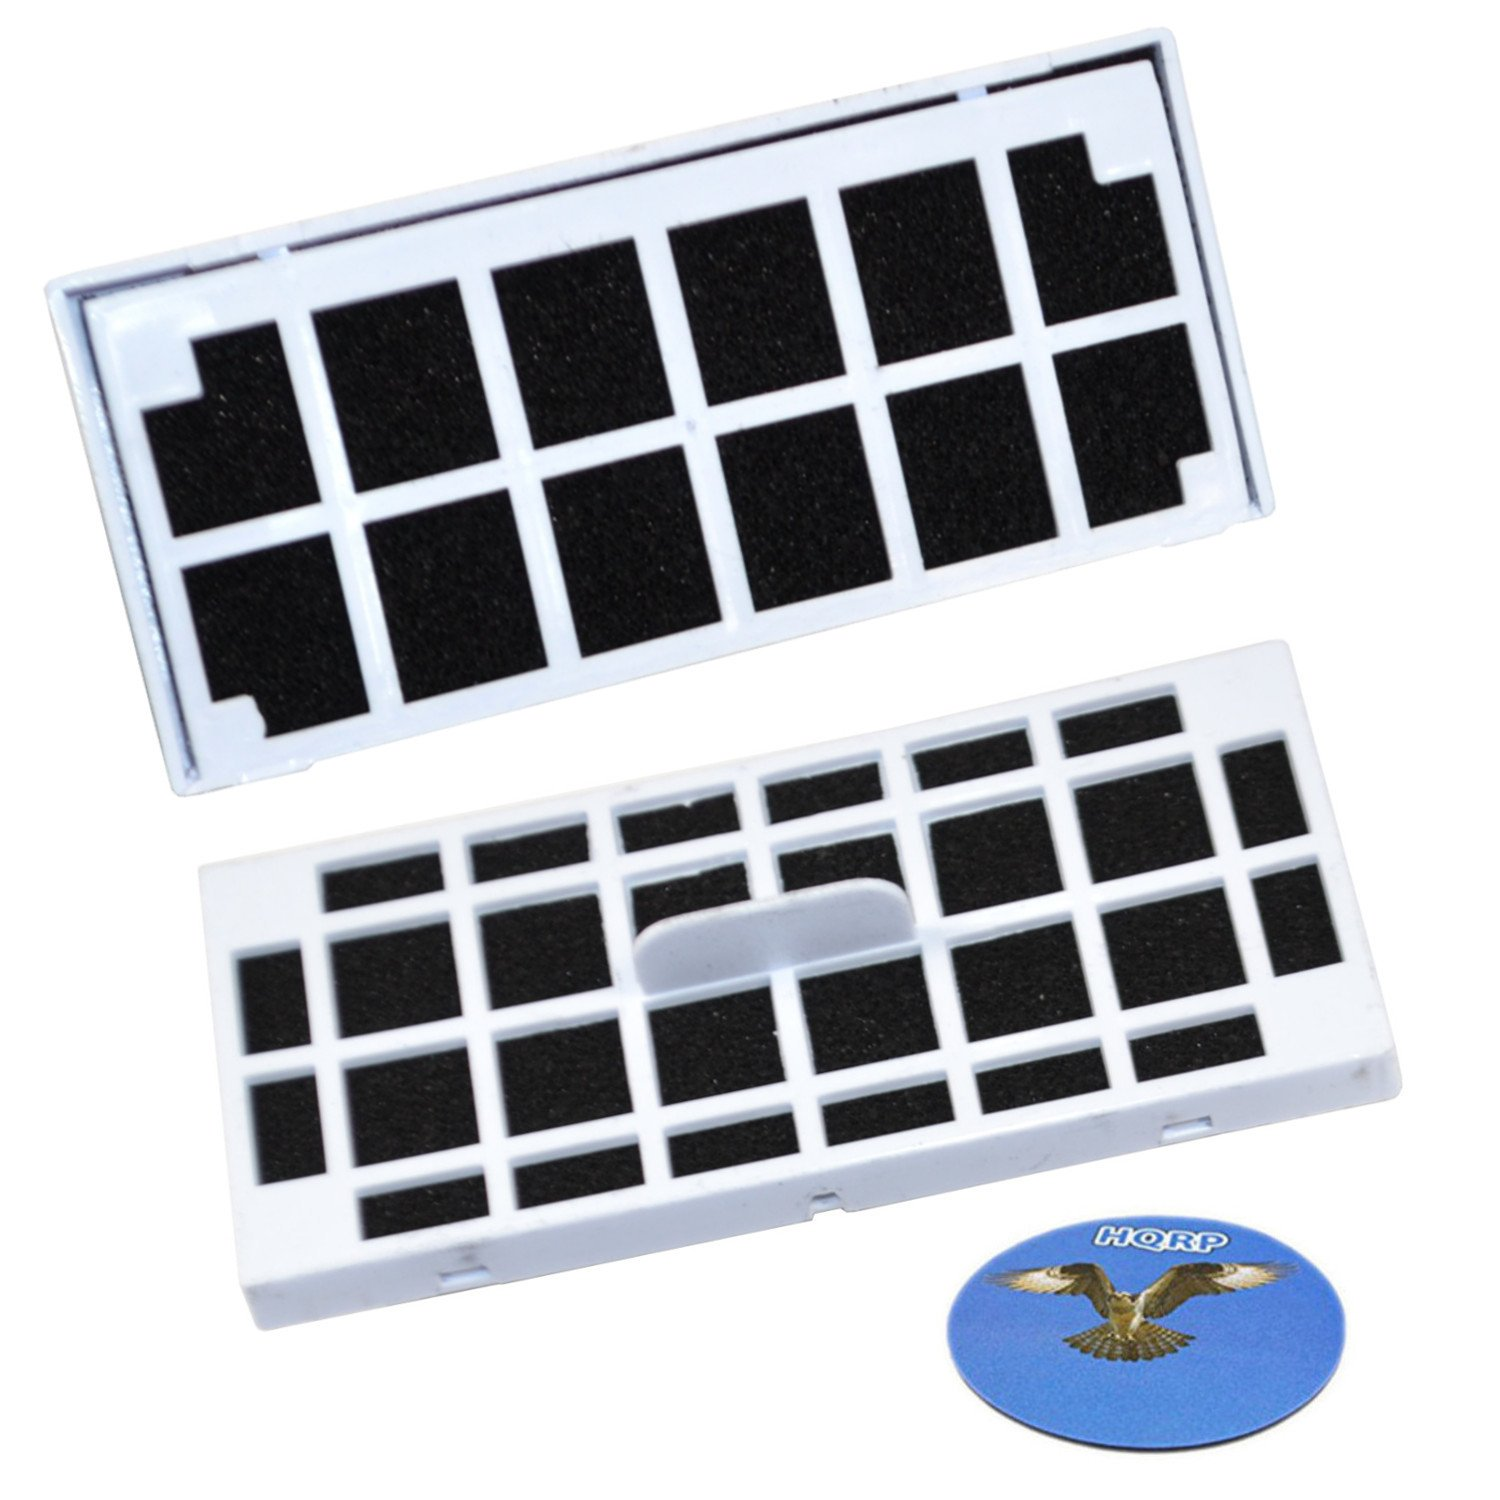 HQRP 2-pack Refrigerator Air Filter for GE ZIR240NPKAII